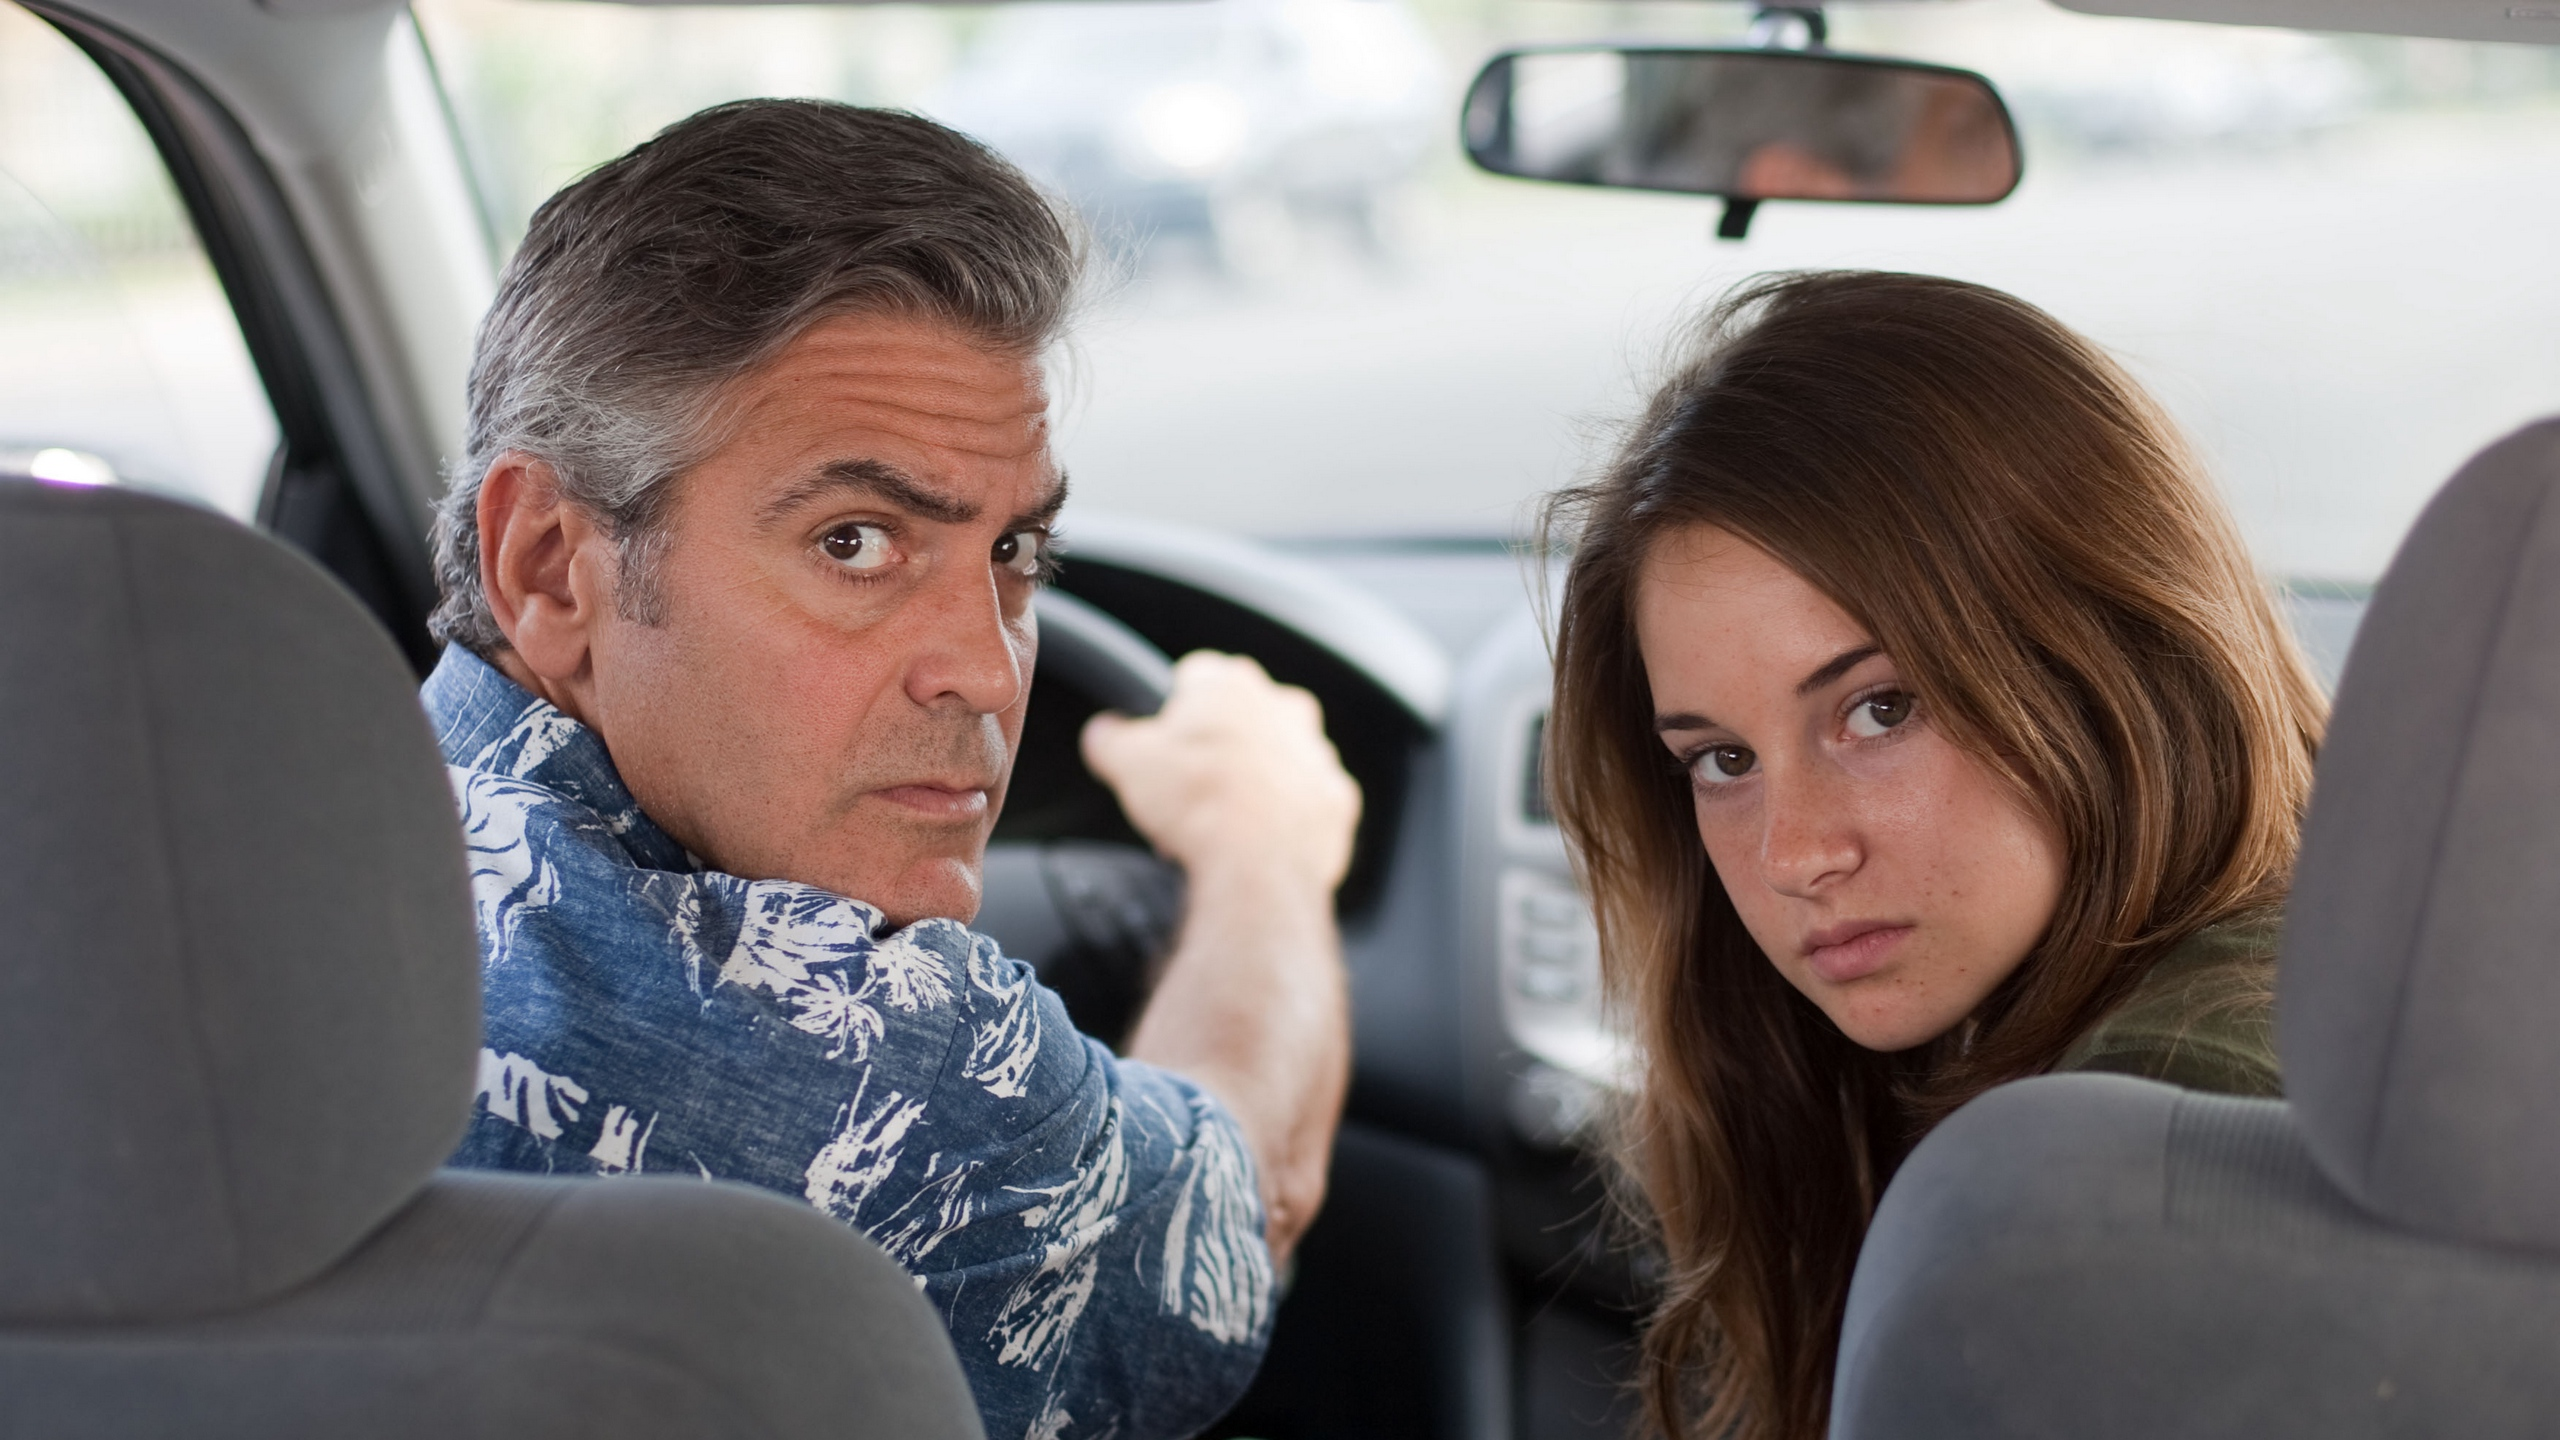 Download wallpaper 2560x1440 the descendants george clooney 2560x1440